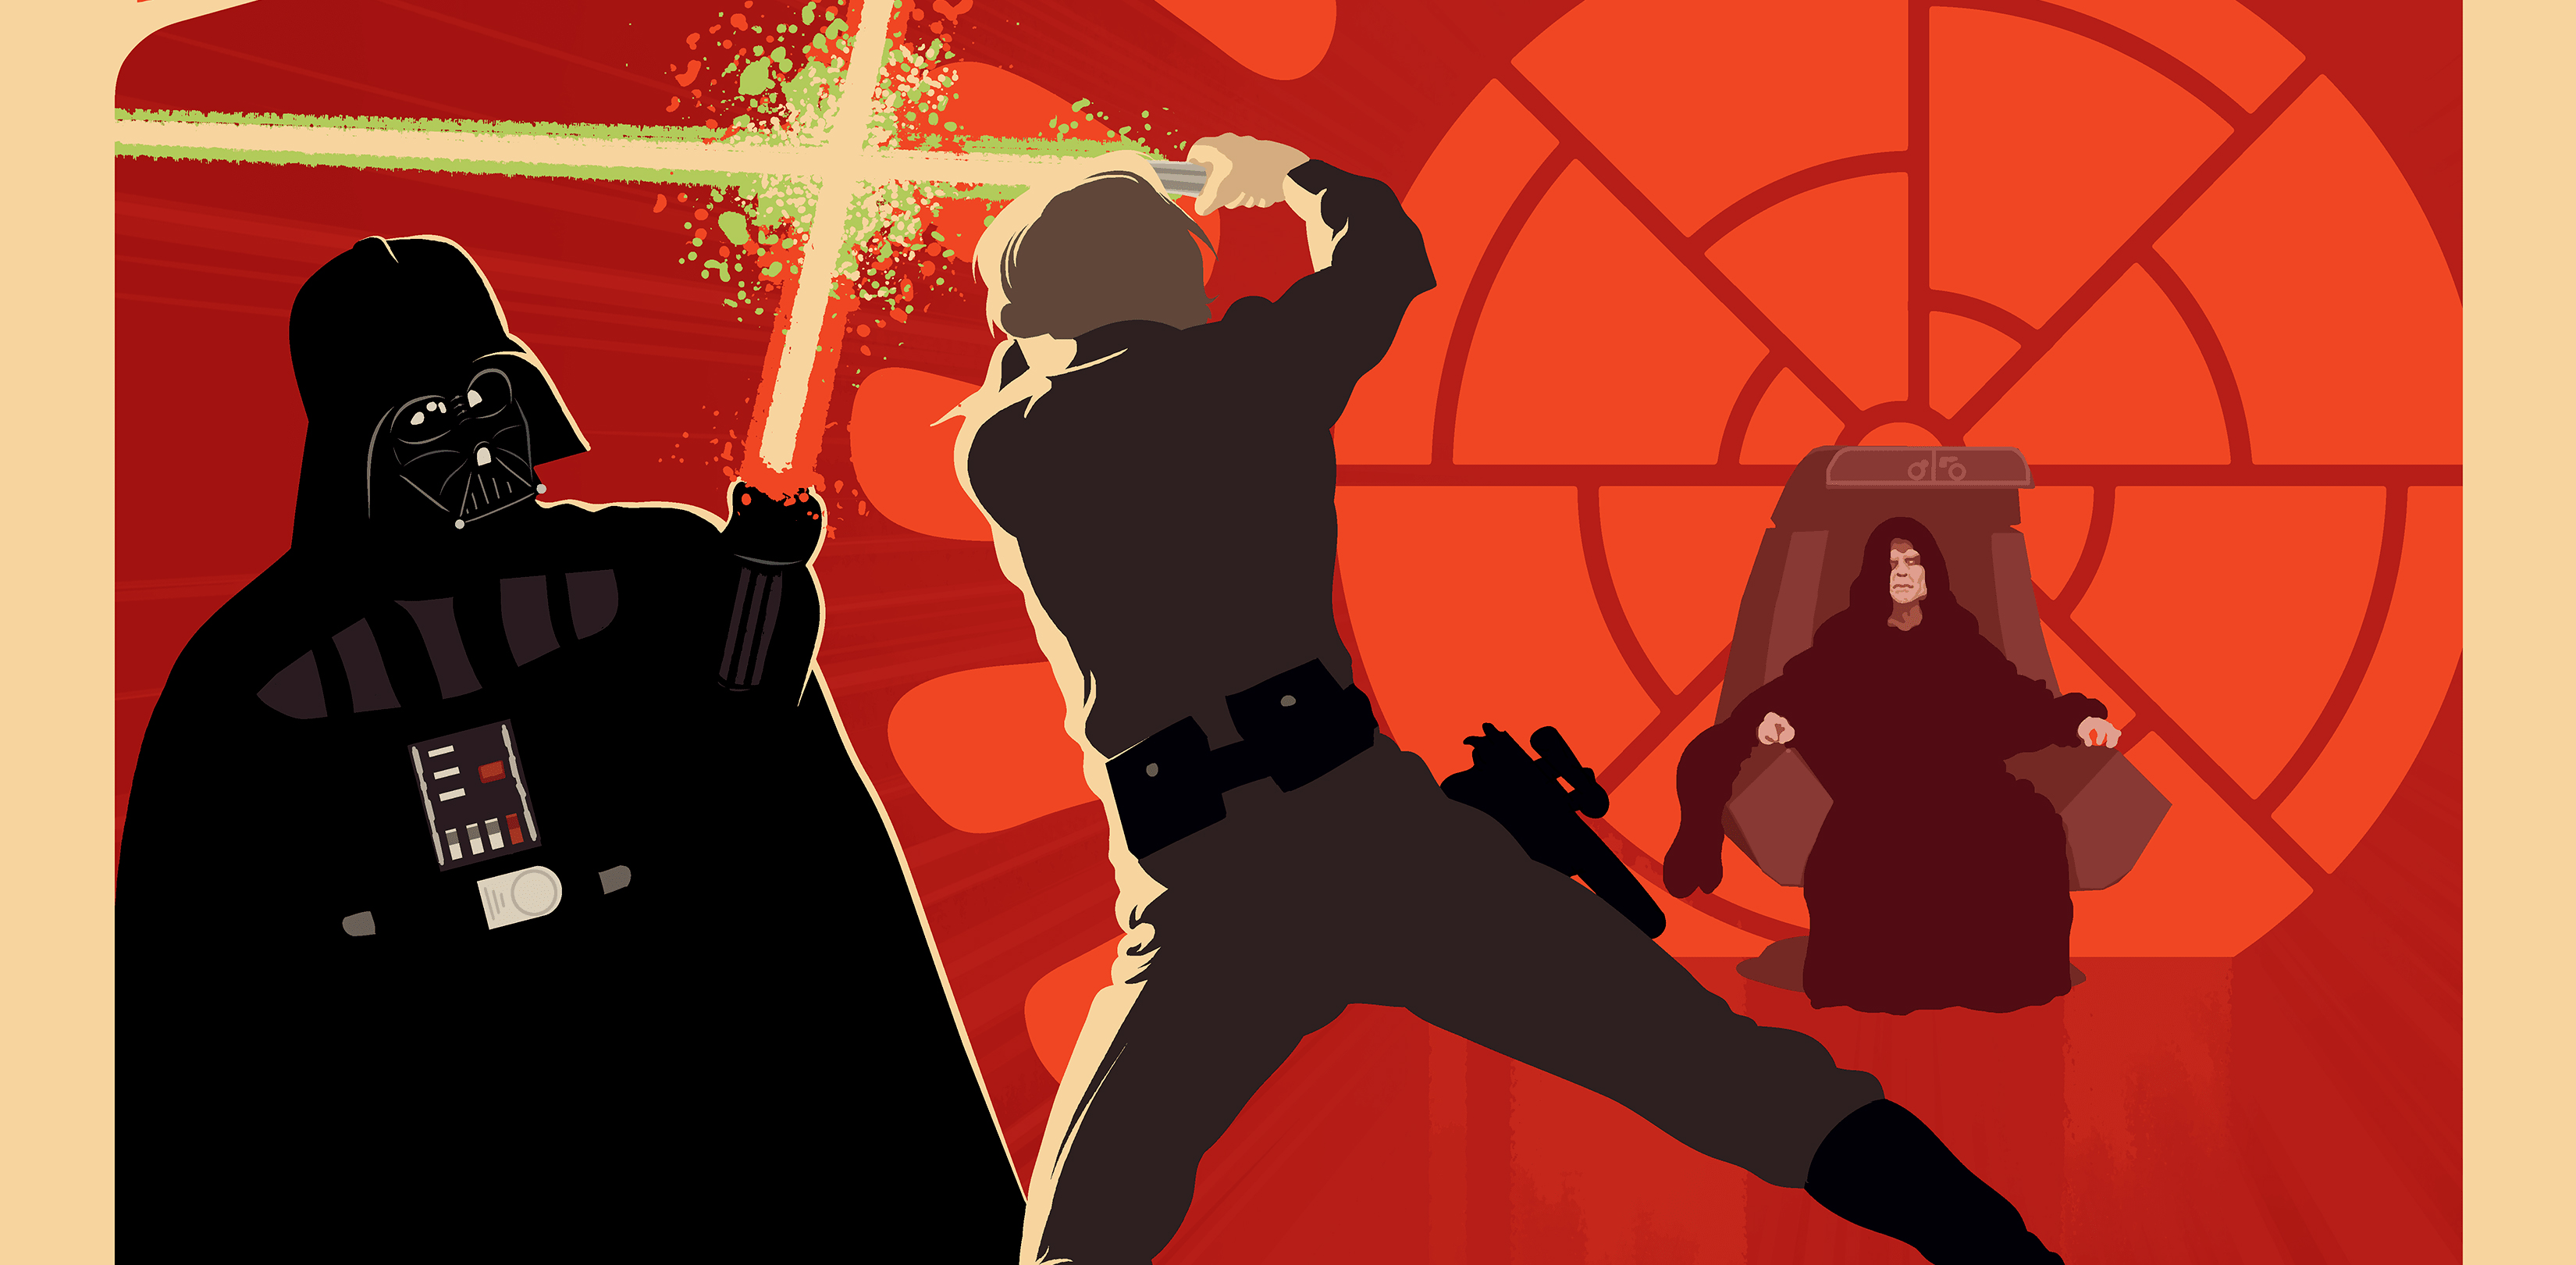 Luke And Darth Vader Fan Artwork Hd Movies 4k Wallpapers Images